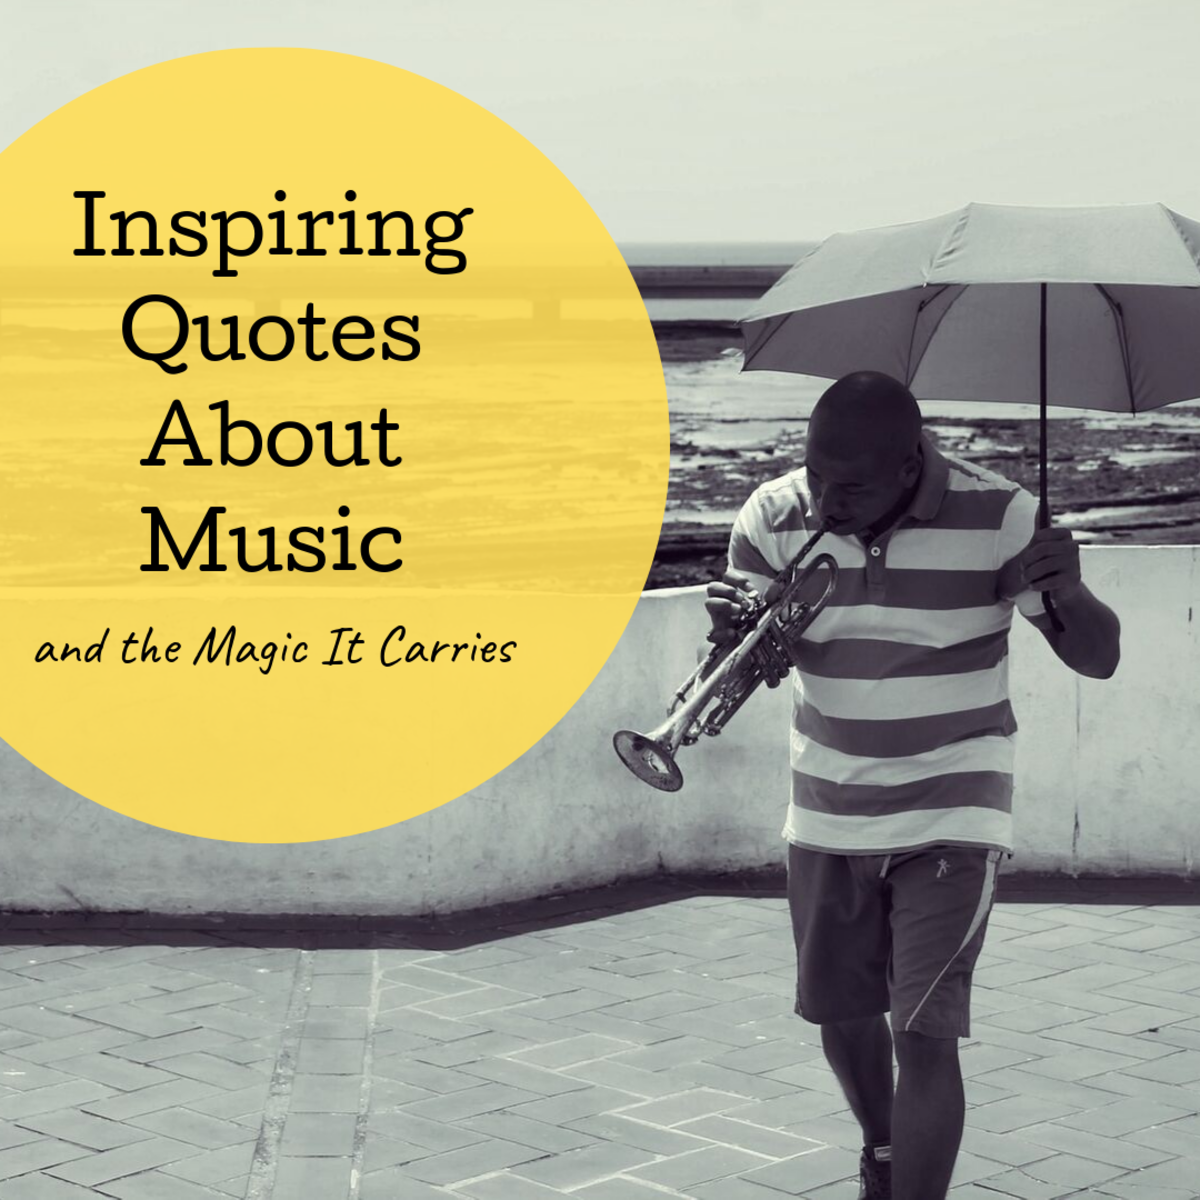 Read over numerous inspirational quotes related to music and the magic it brings to our lives.